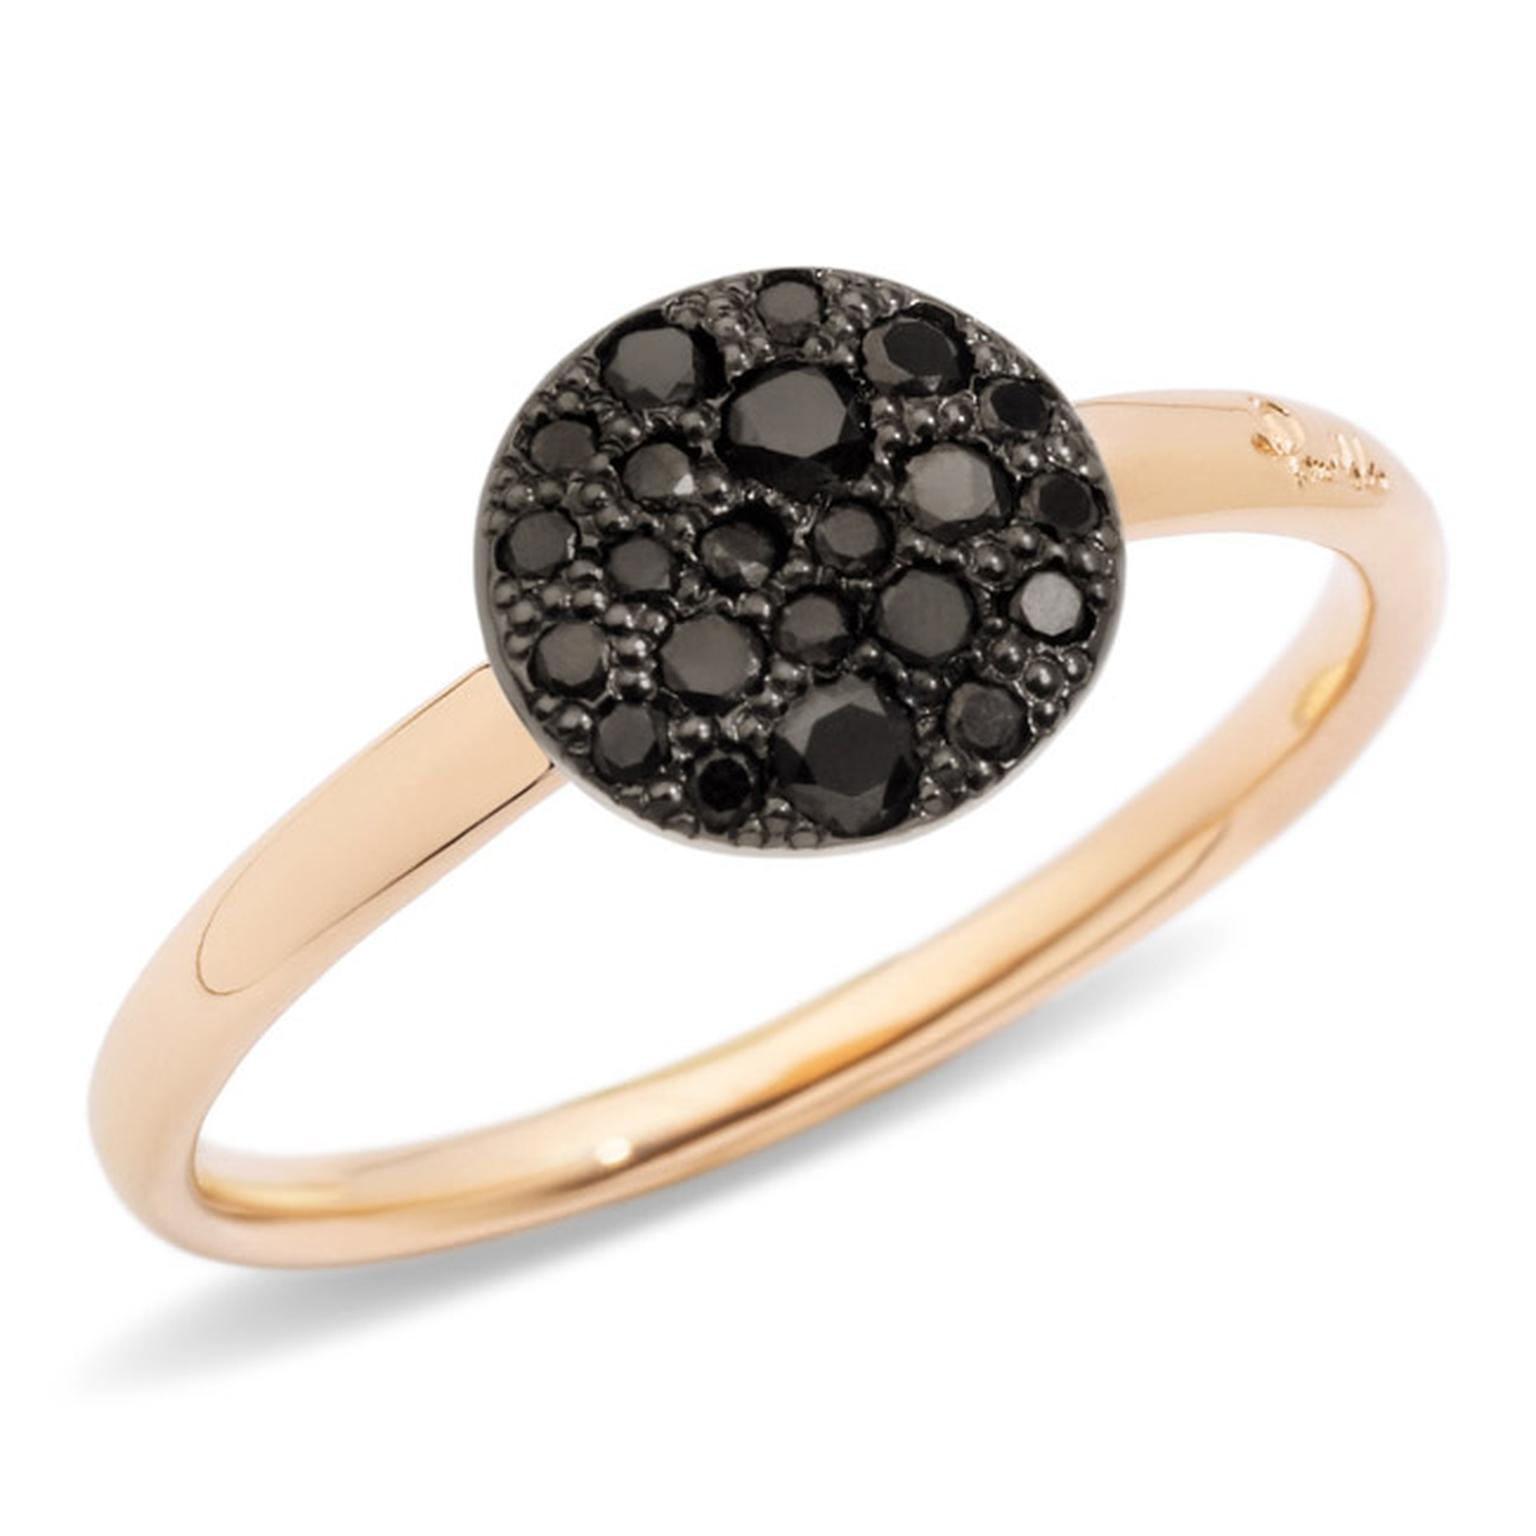 Pomellato-Sabbia-Black-Diamond-Ring-Main